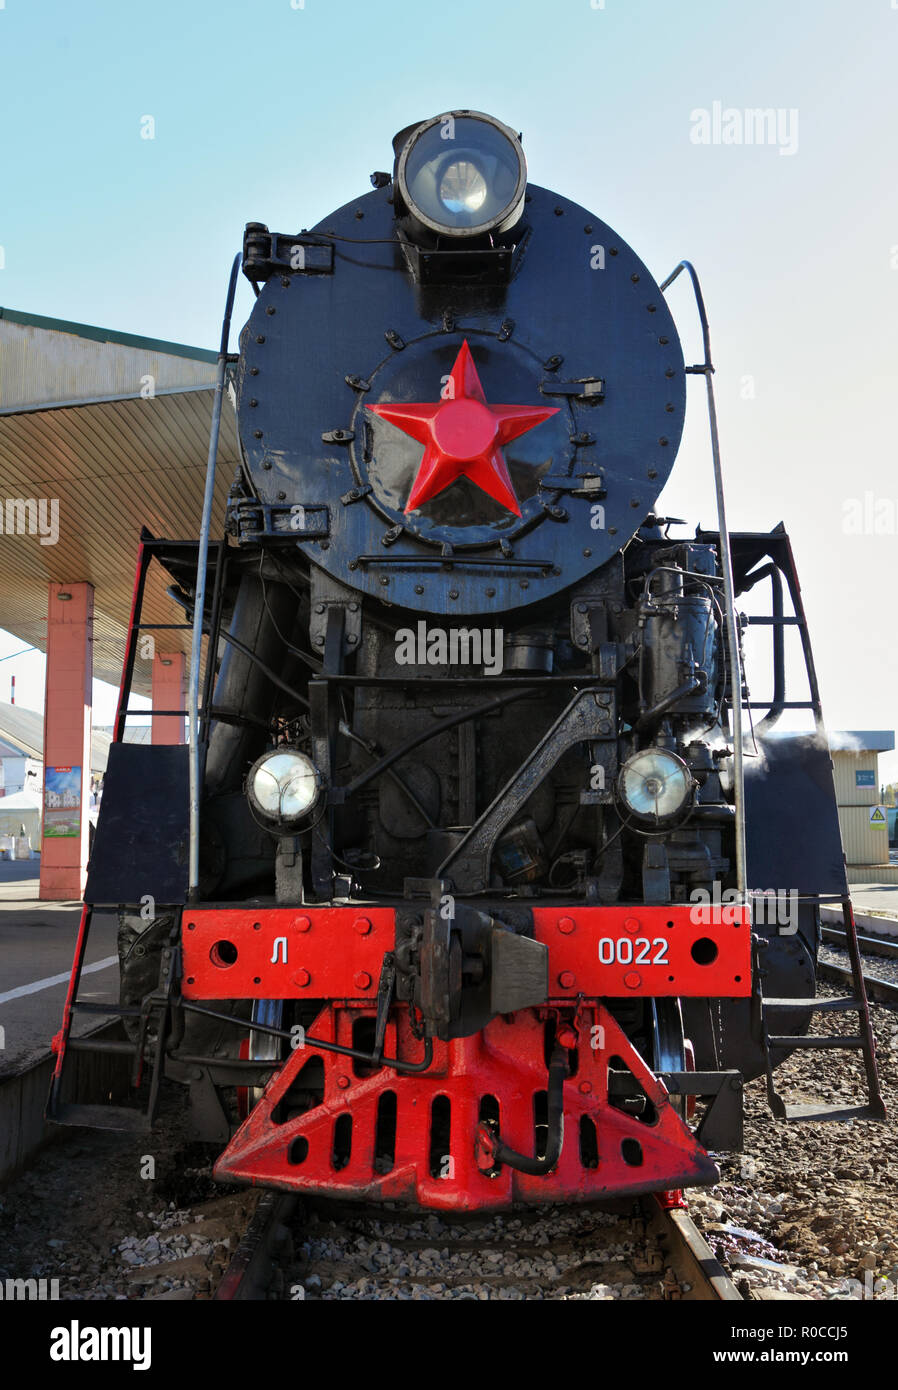 Russian retro steam locomotive series L with symbol of former state the USSR and red wheels. Part of a retro train Stock Photo